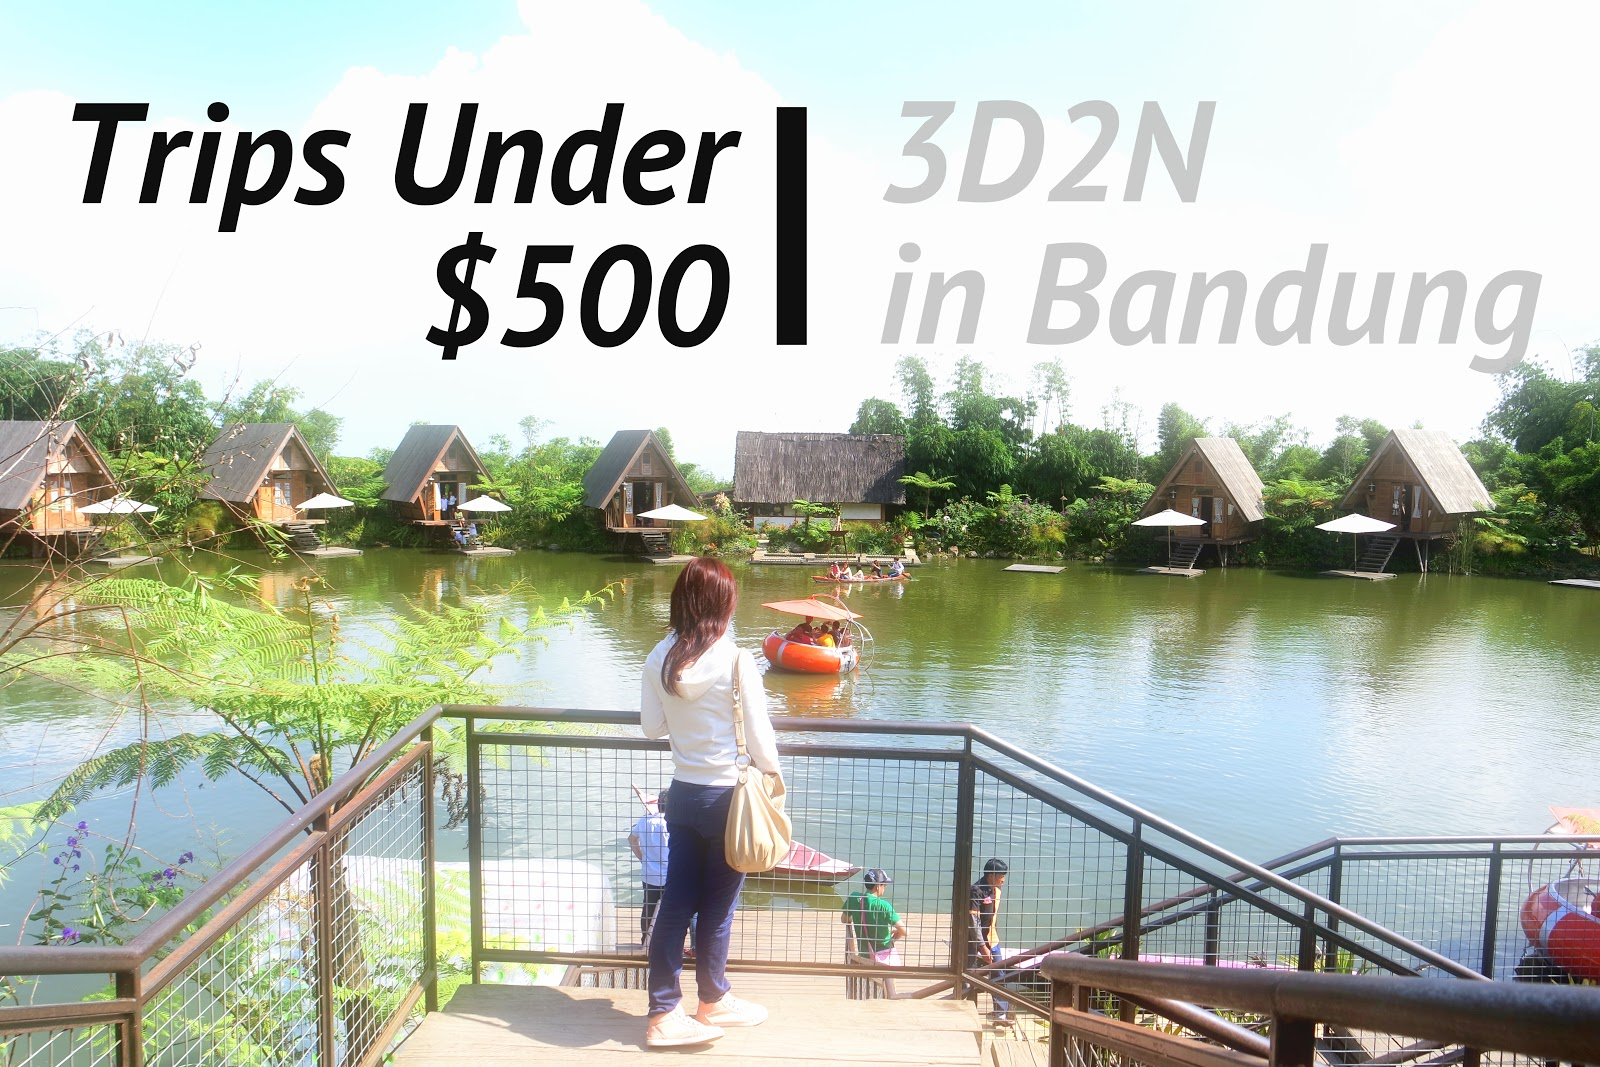 Trips under 500 guide to 3d2n in bandung indonesia for Cheap vacations in october